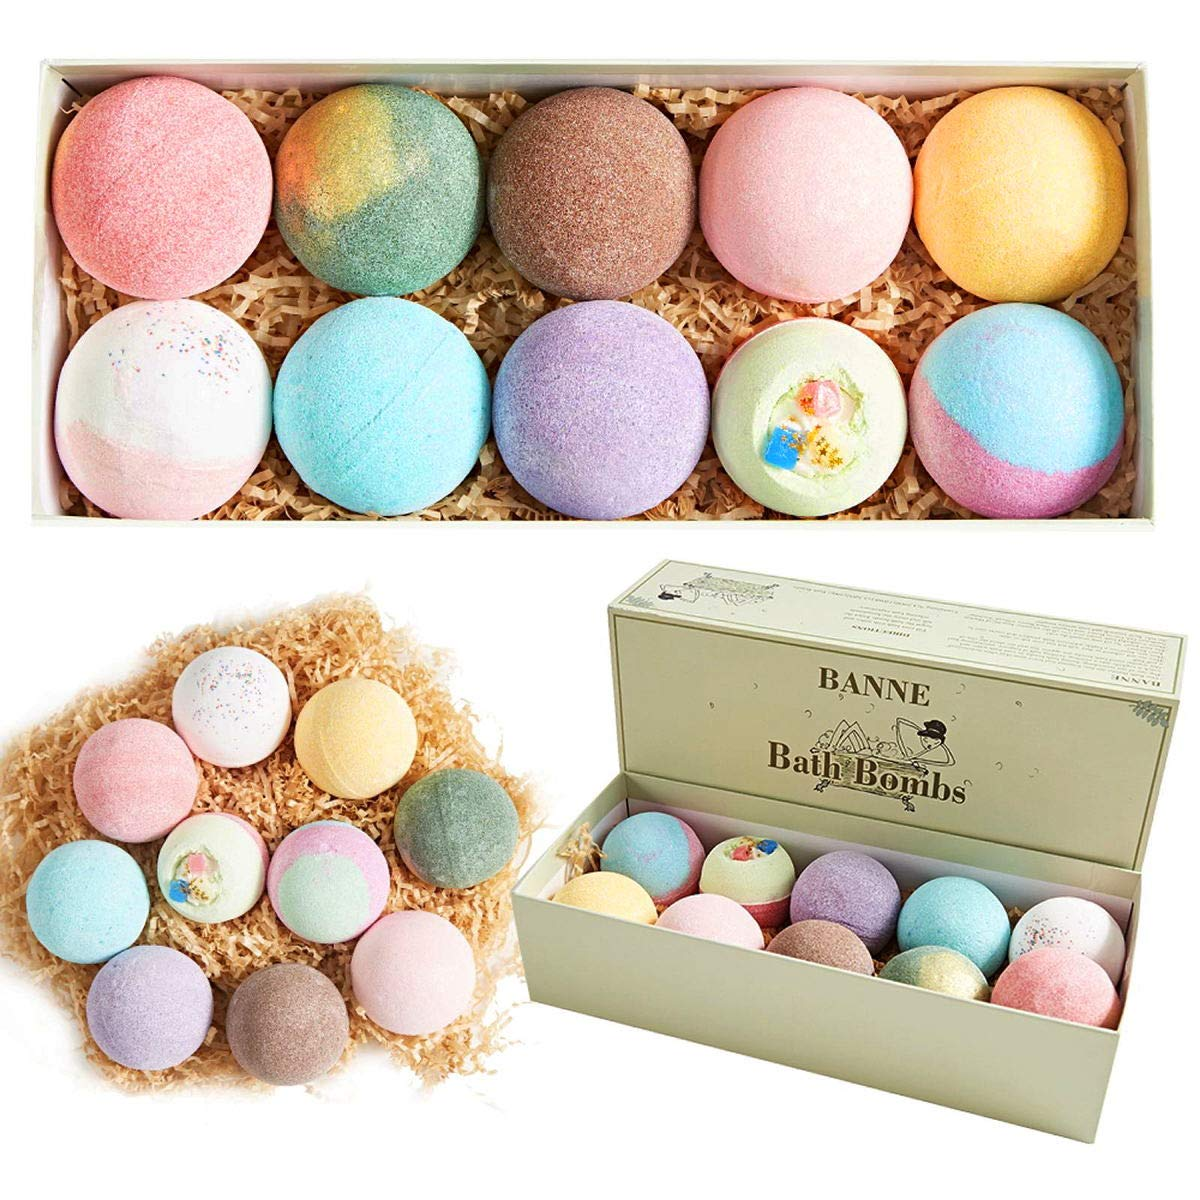 Banne Bath Bombs 10 x 4.2 oz Assorted Pack Organic Handmade Essential Oil Ultra Lush Fizzy Spa Bath Bombs Kit for Moisturizing Skin Best Gift Ideas for Women Girls